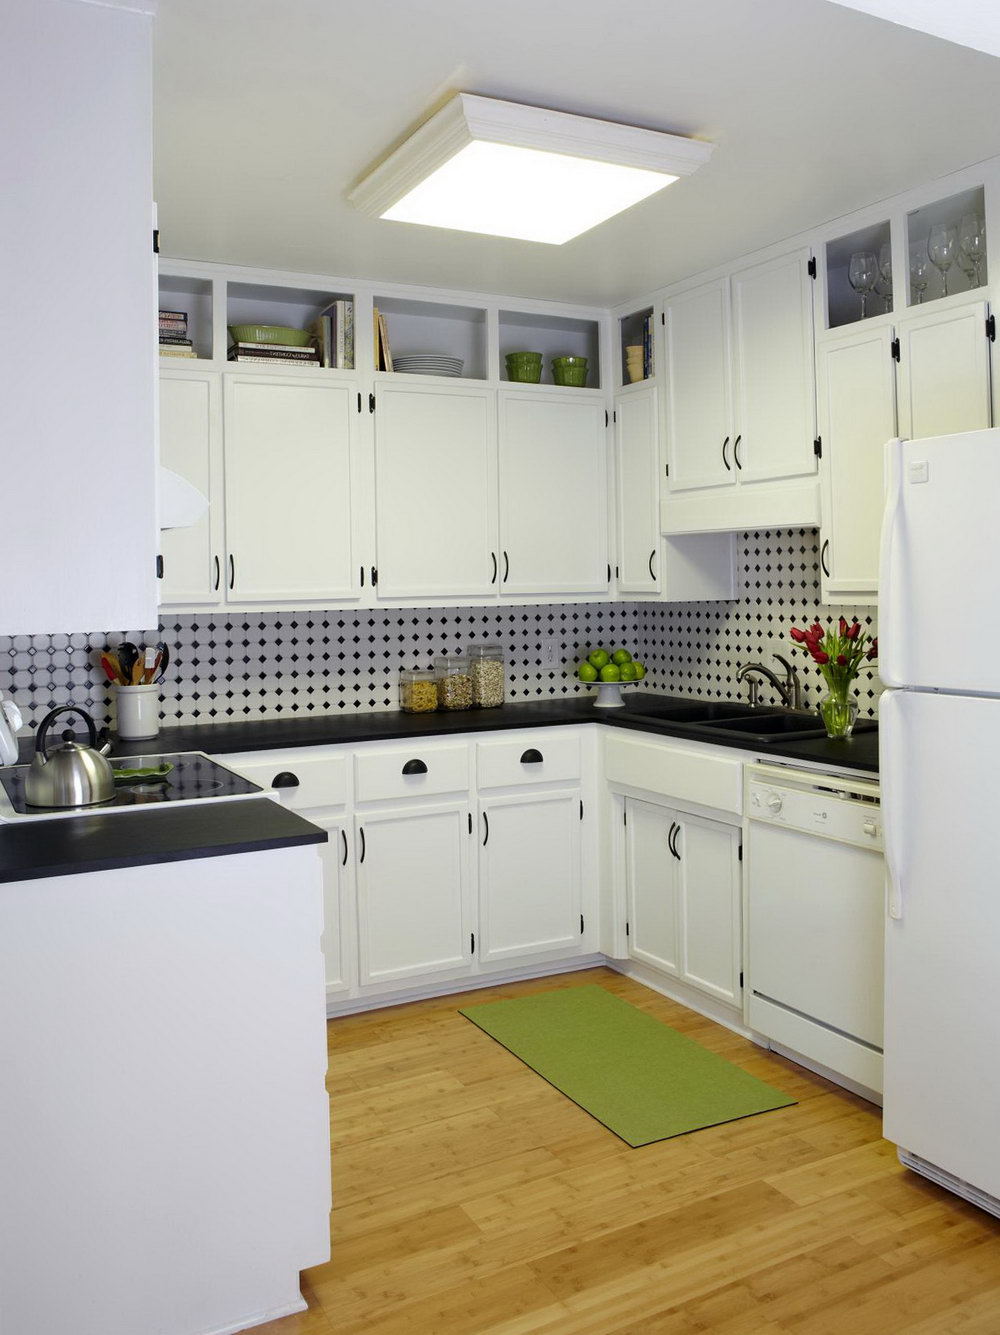 Recycled Kitchen Cabinets Massachusetts